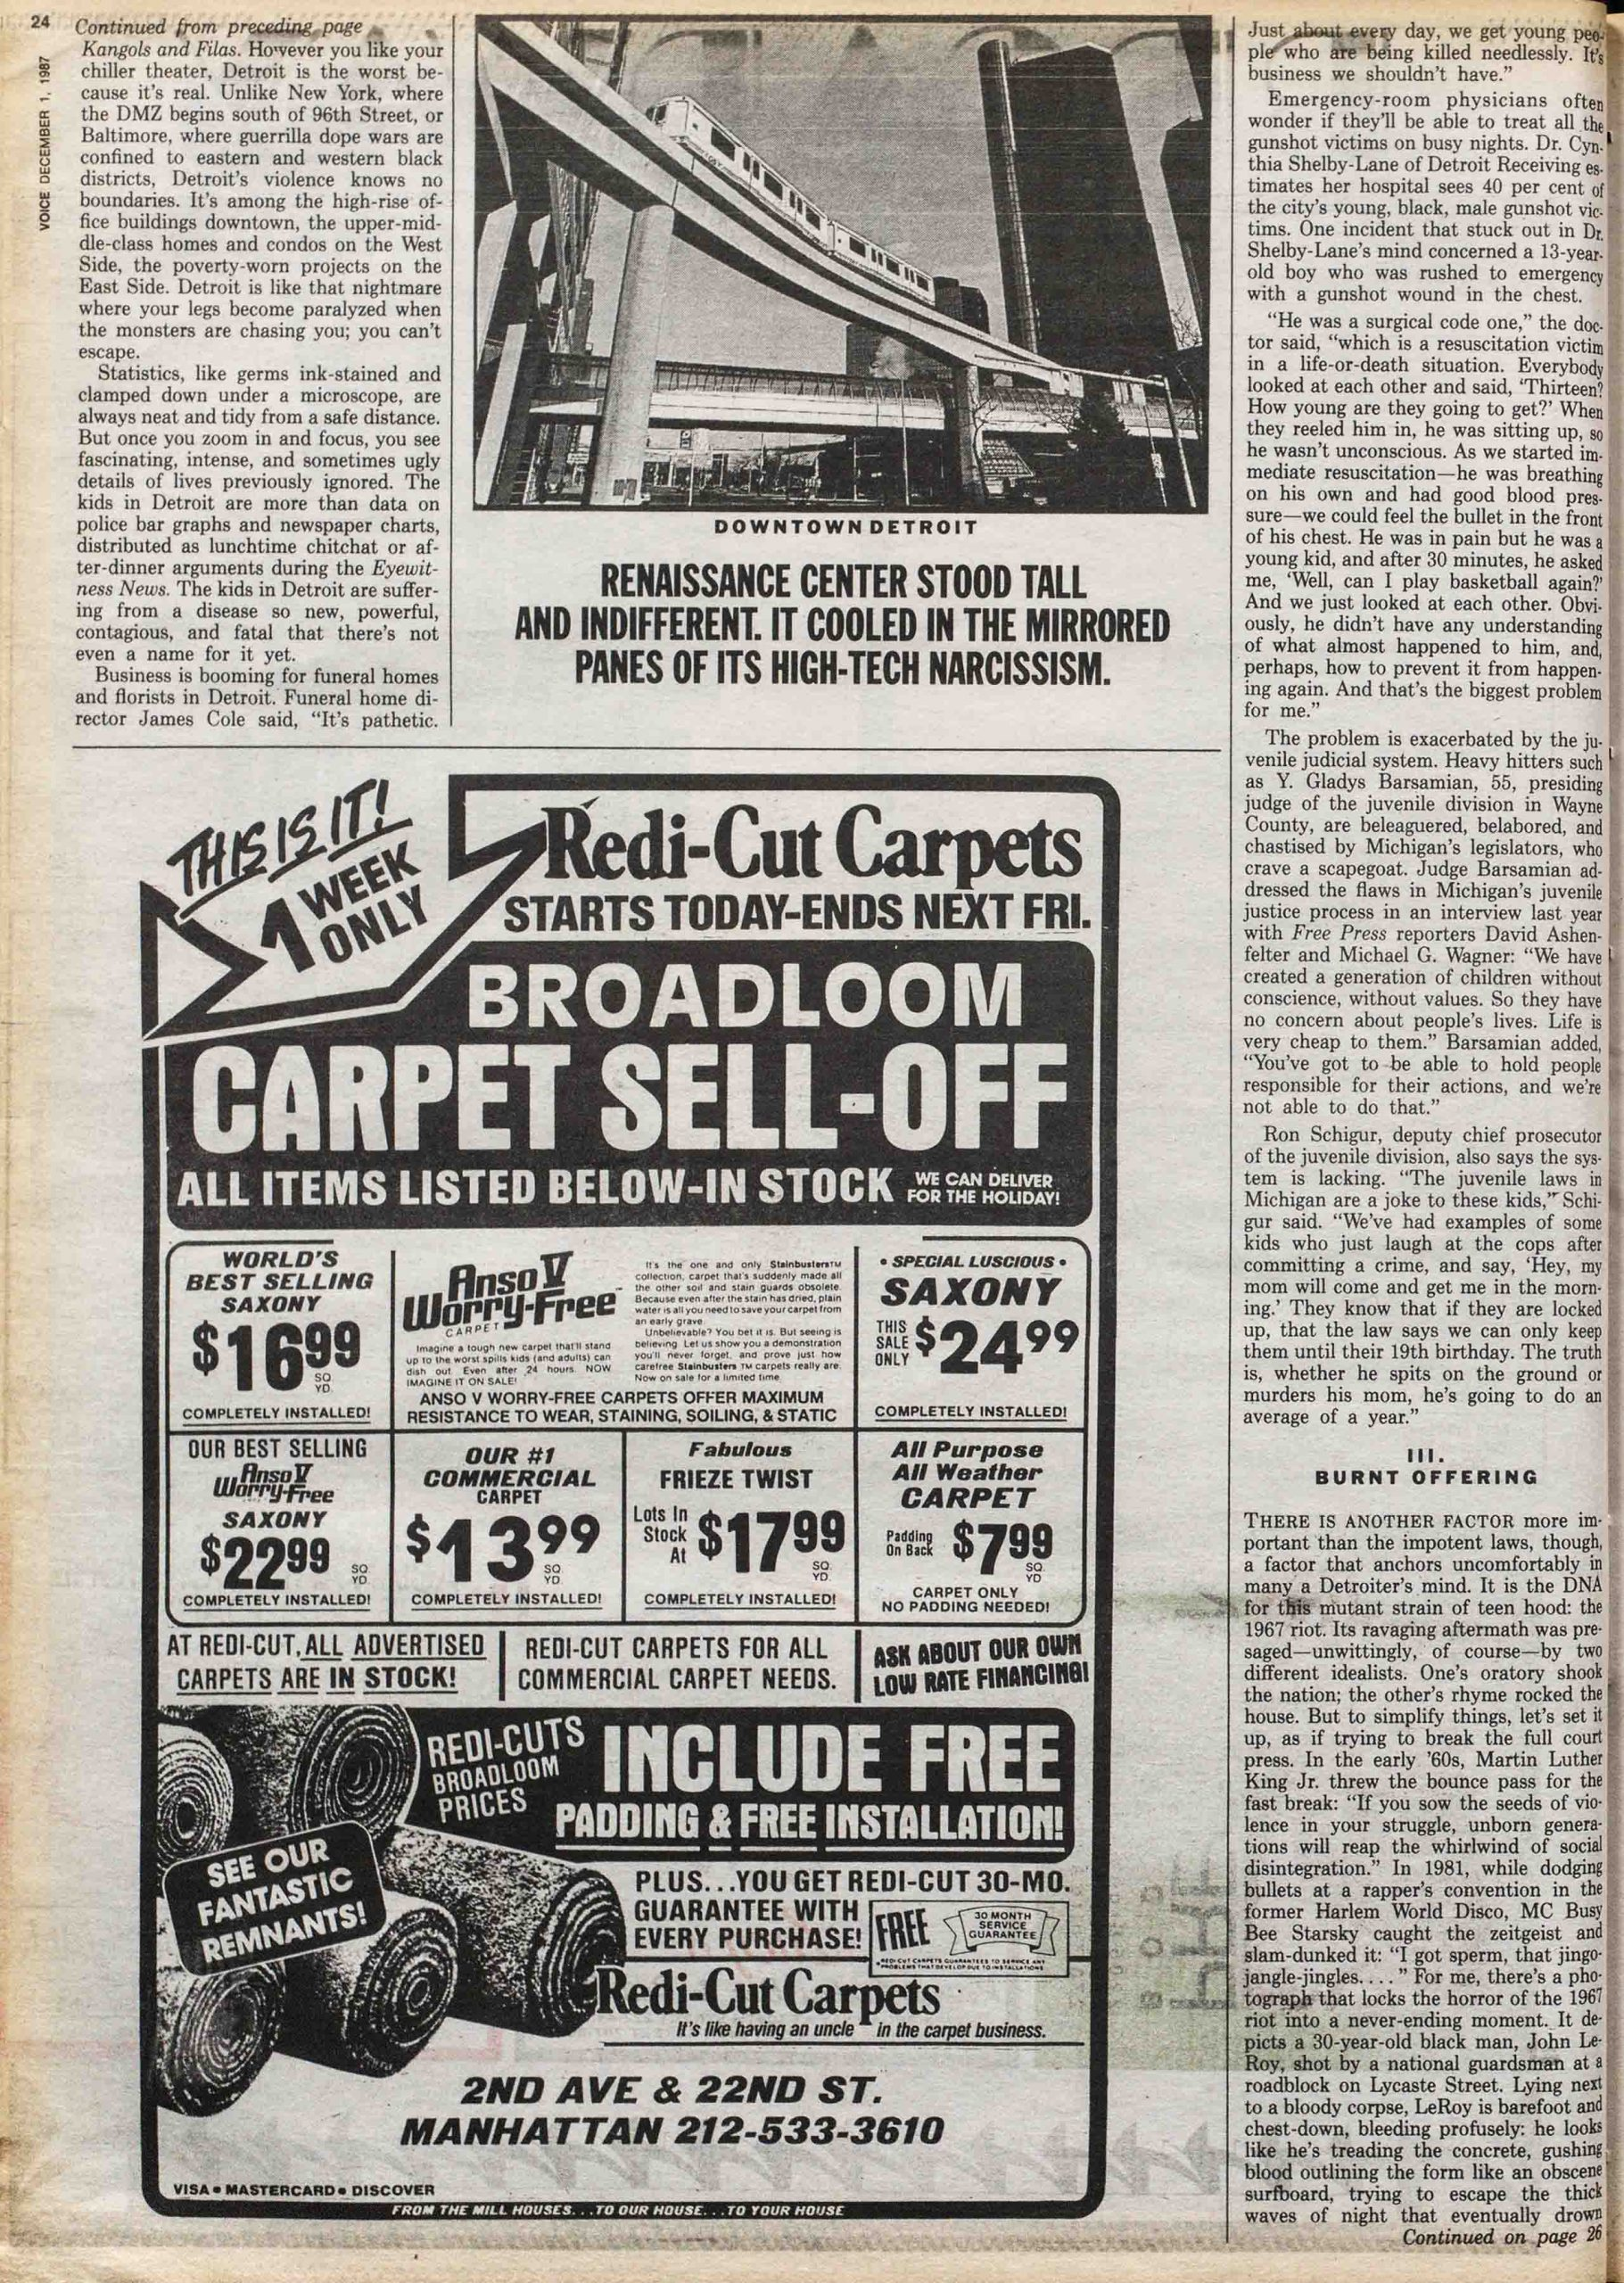 1987 Village Voice article by Barry Michael Cooper about gun violence in Detroit